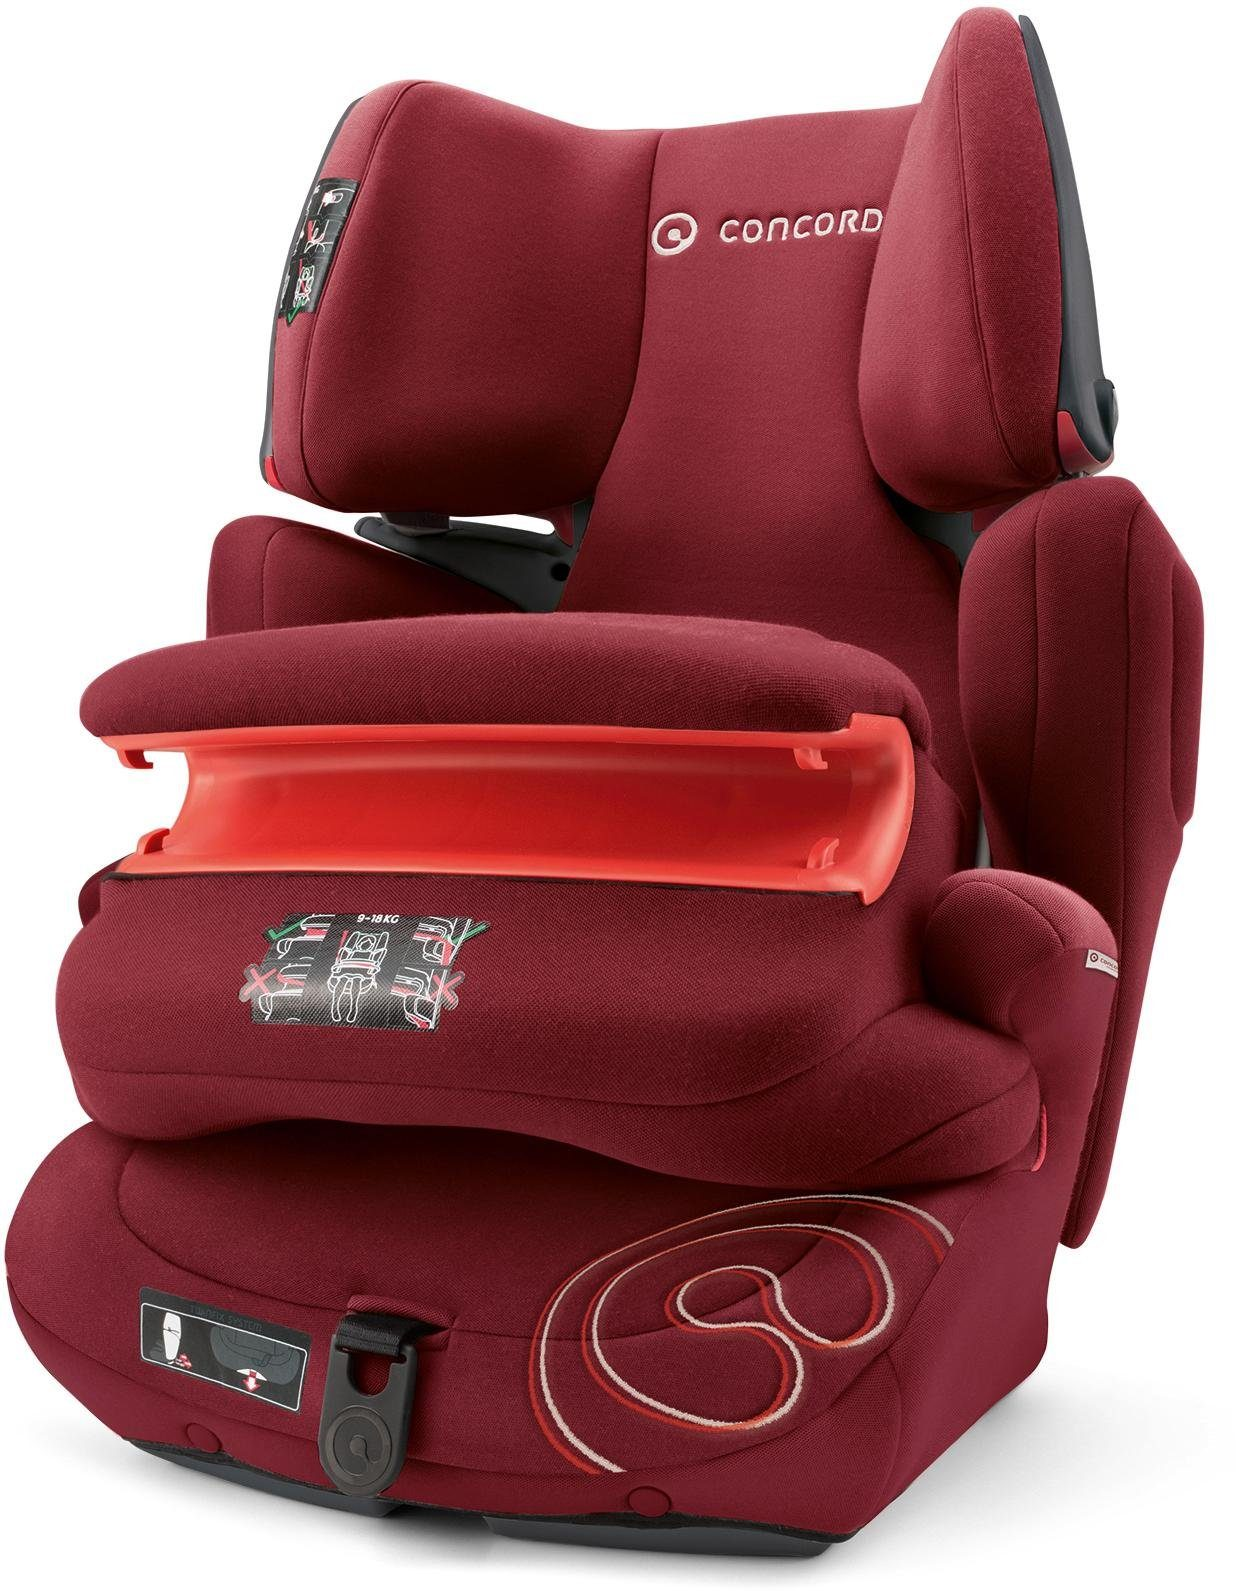 Concord Kindersitz, 9-36 kg, »Transformer Pro, Bordeaux Red«